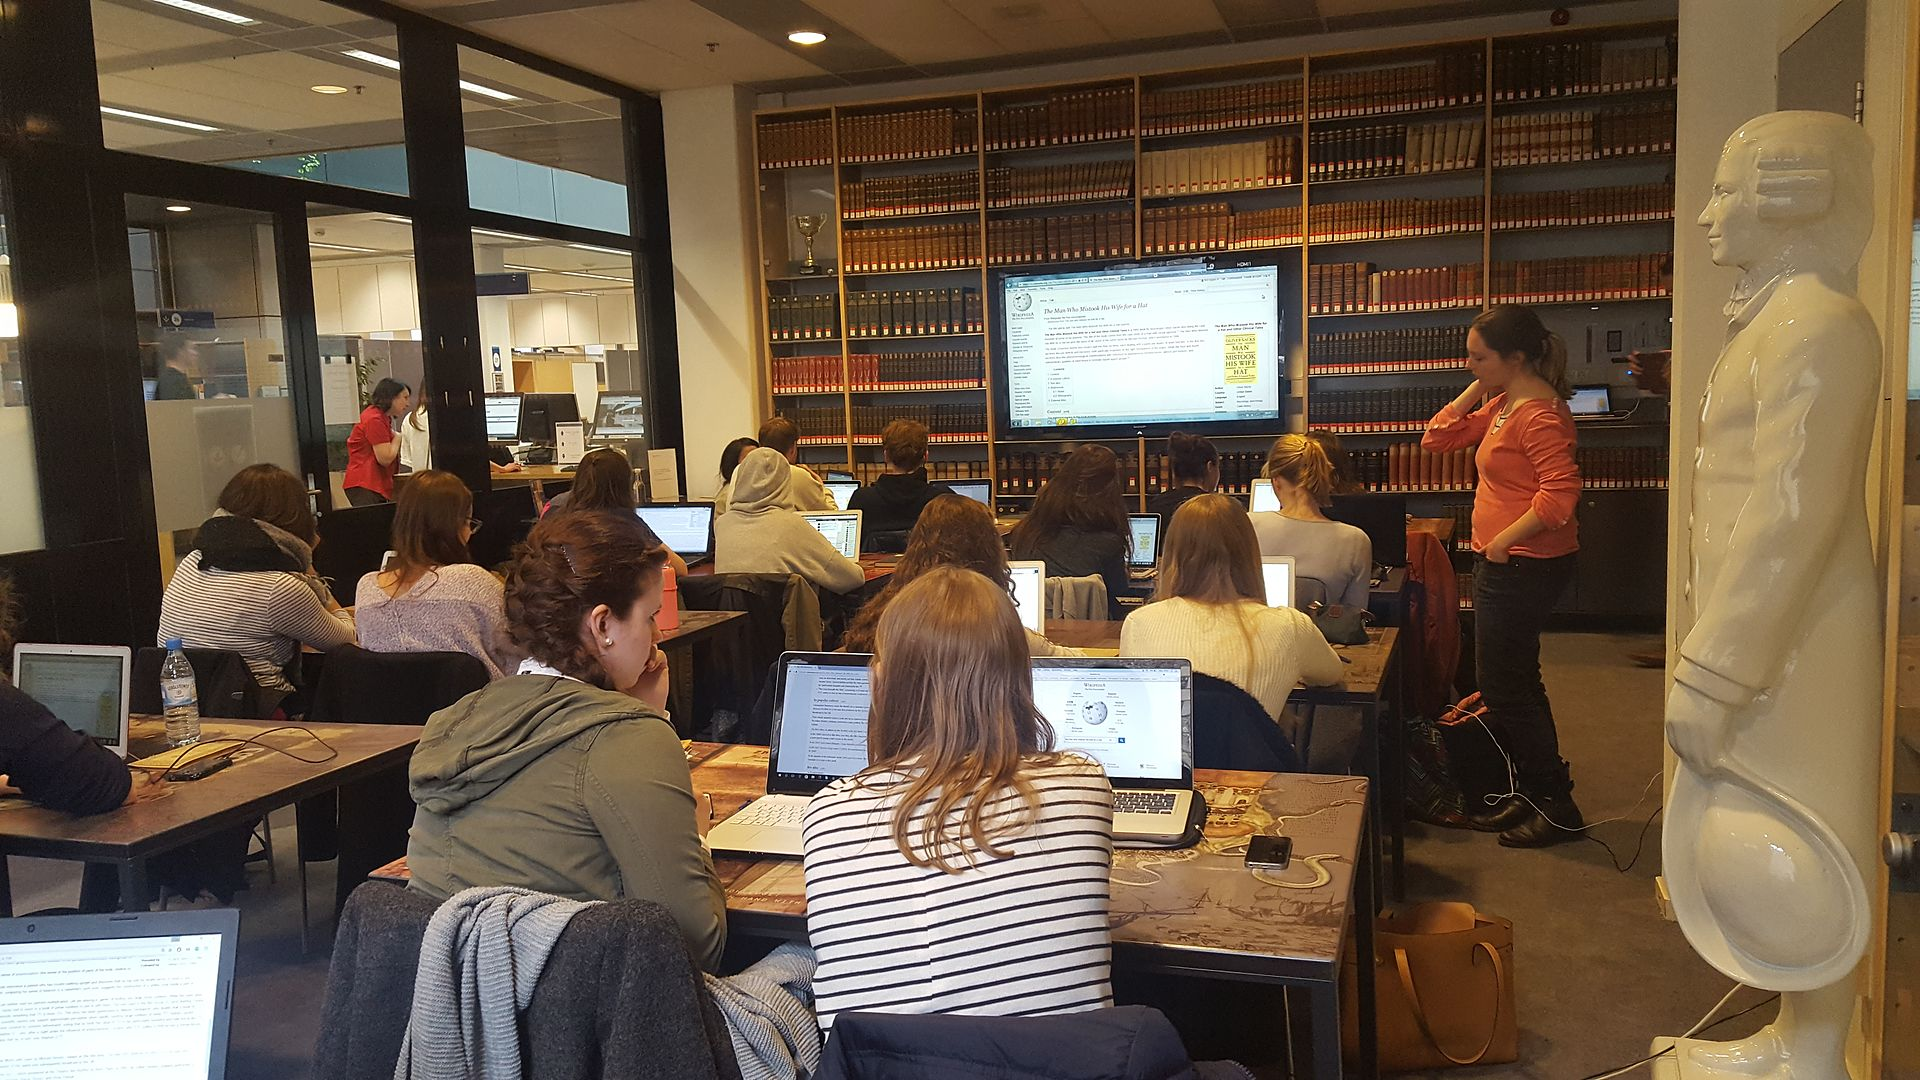 Wikipedia course at Maastricht University, FPN Historical Book Review, 3 May 2017